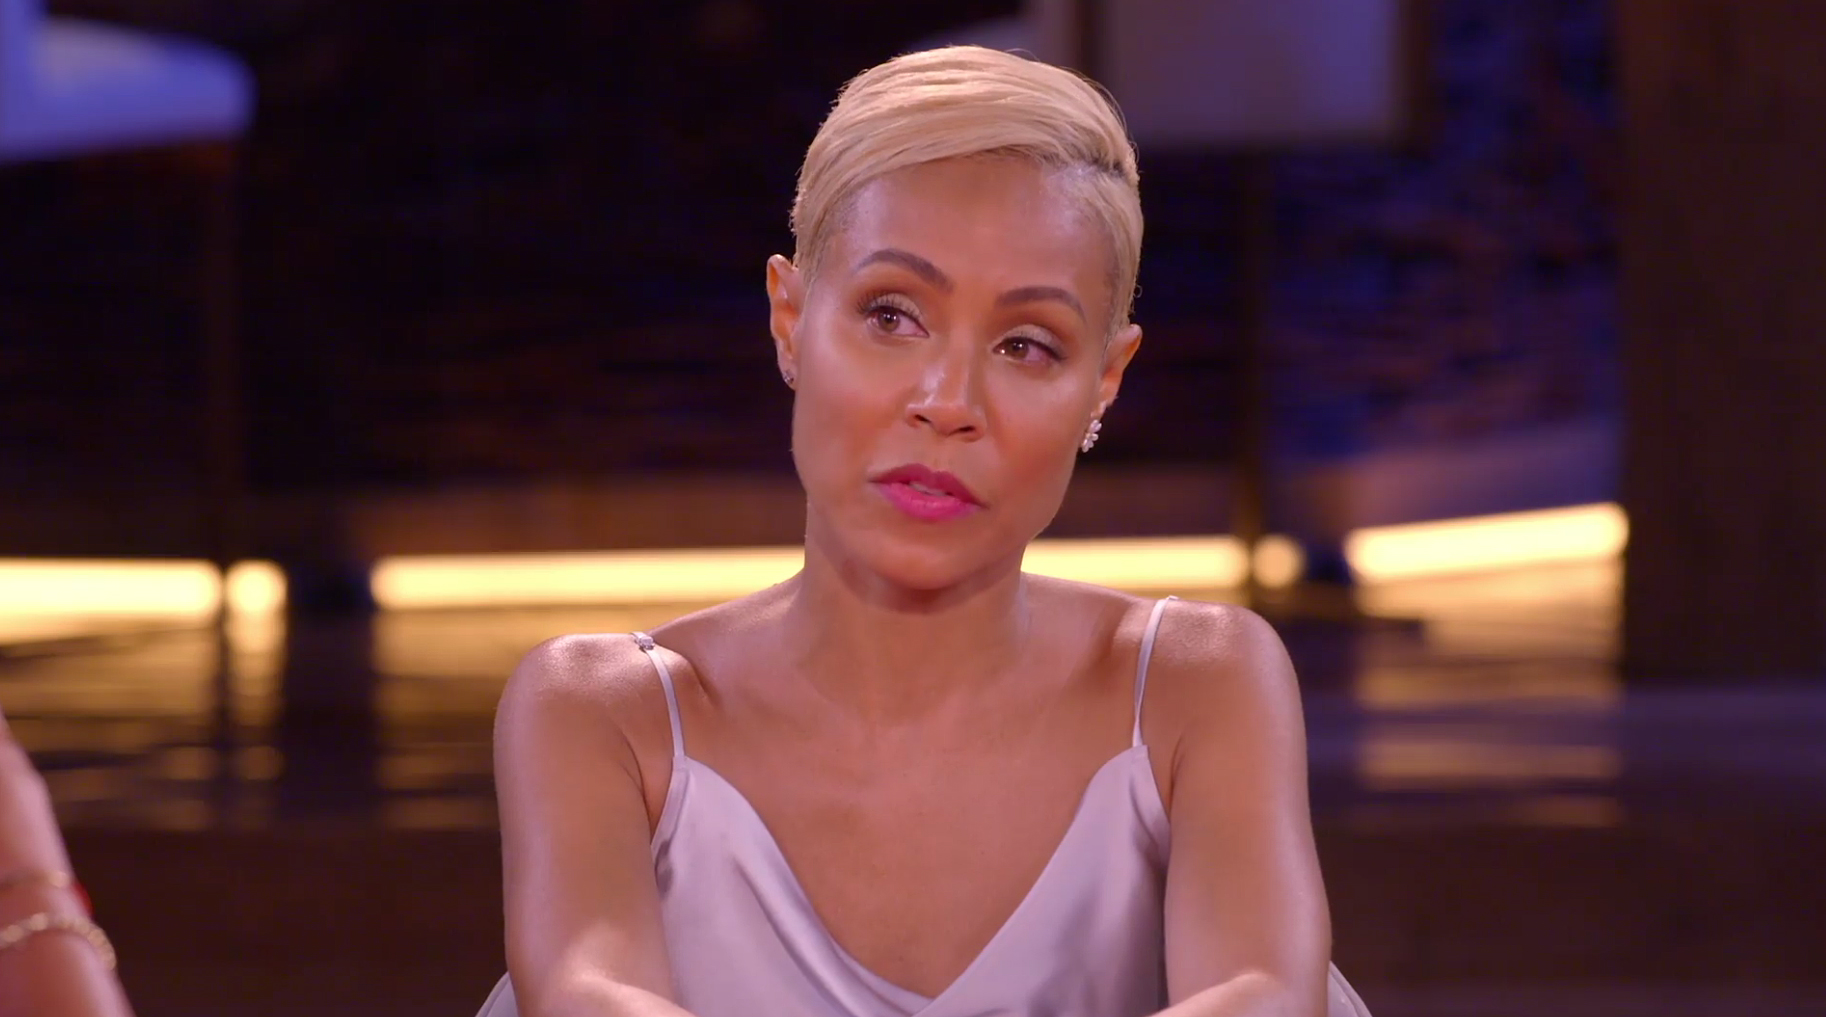 Jada Pinkett-Smith Opens Up About Porn Addiction on Red Table Talk